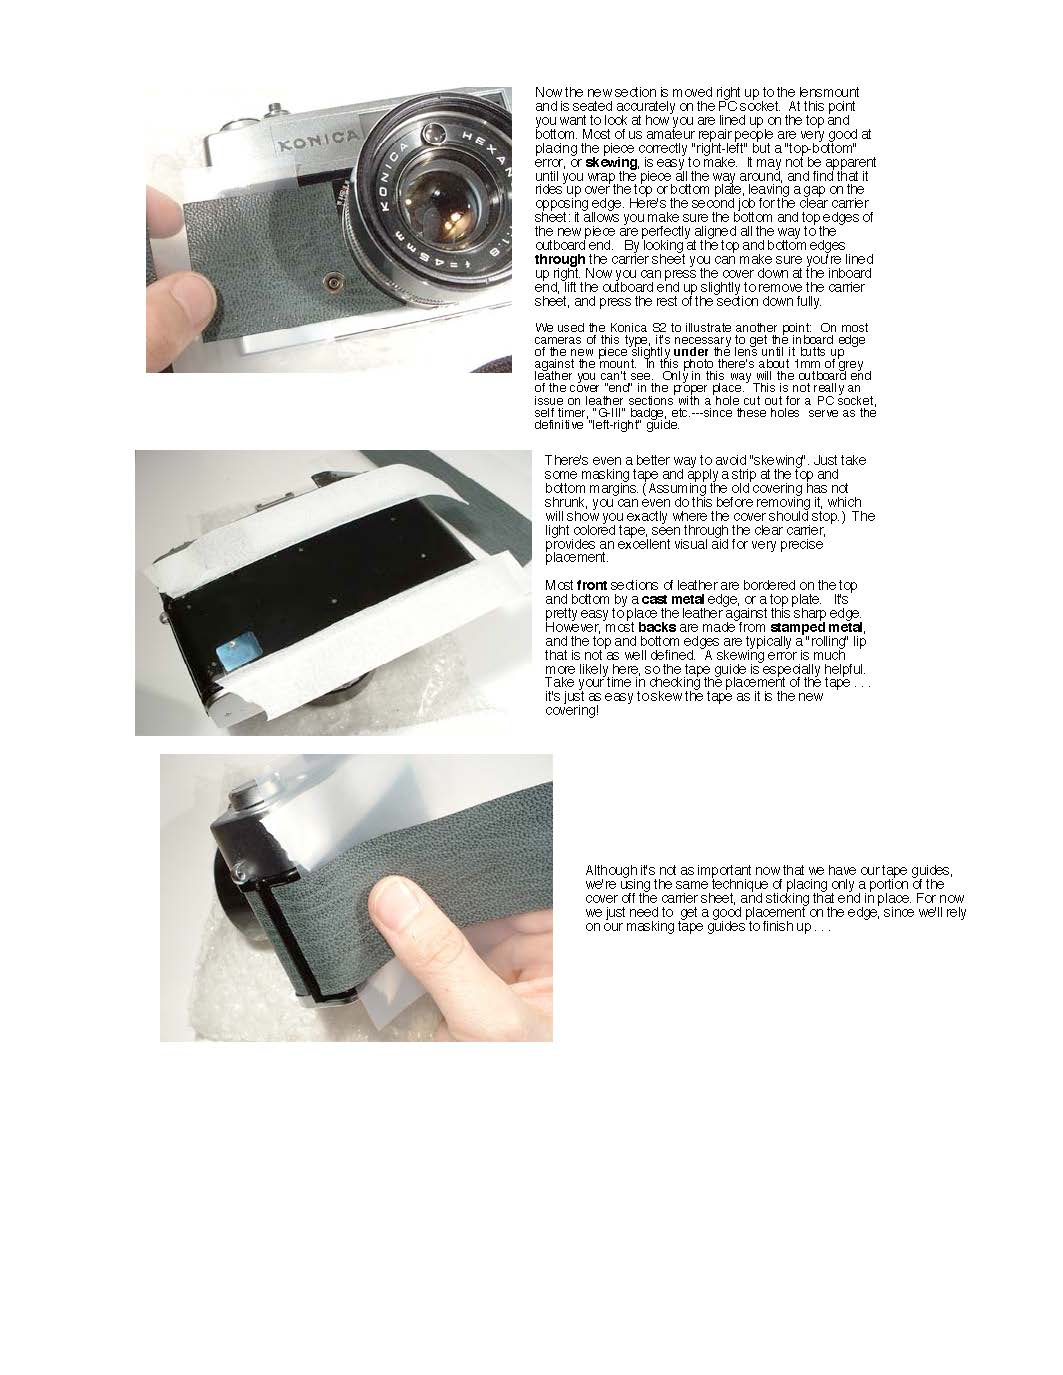 Cameraleather-application guide 1_Page_2.jpg